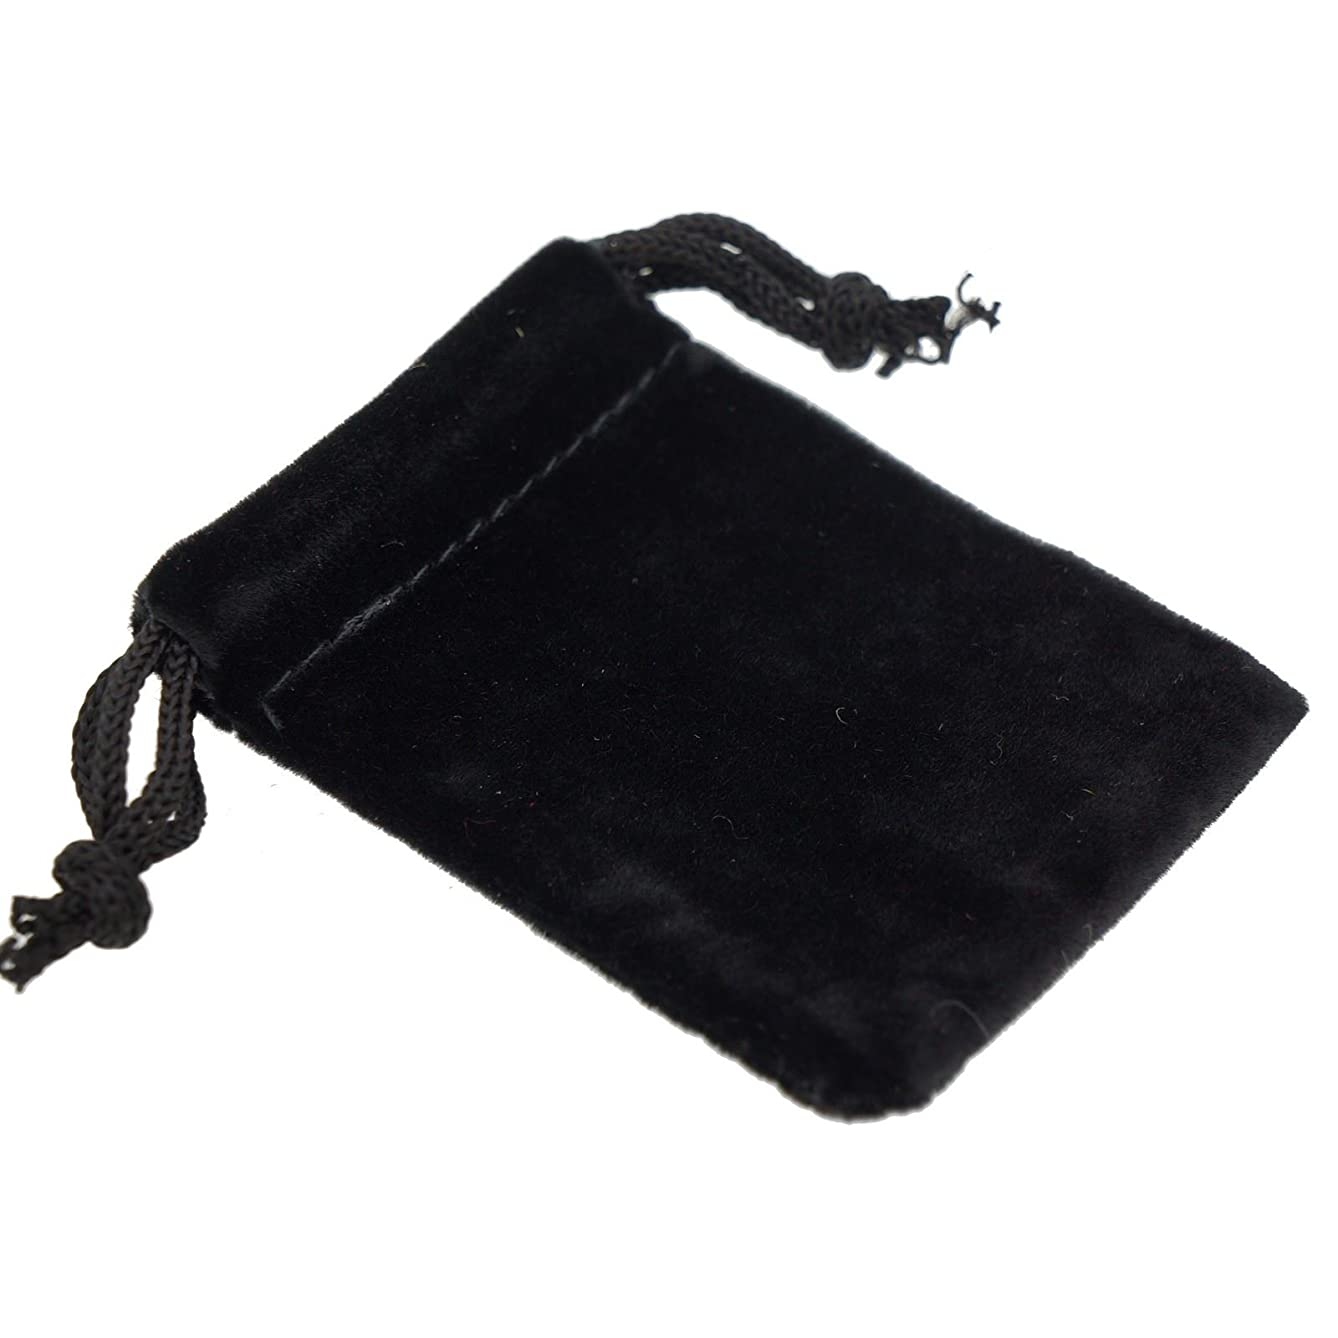 Pack of 12 Black Color Soft Velvet Pouches w Drawstrings for Jewelry Gift Packaging, 5x7cm